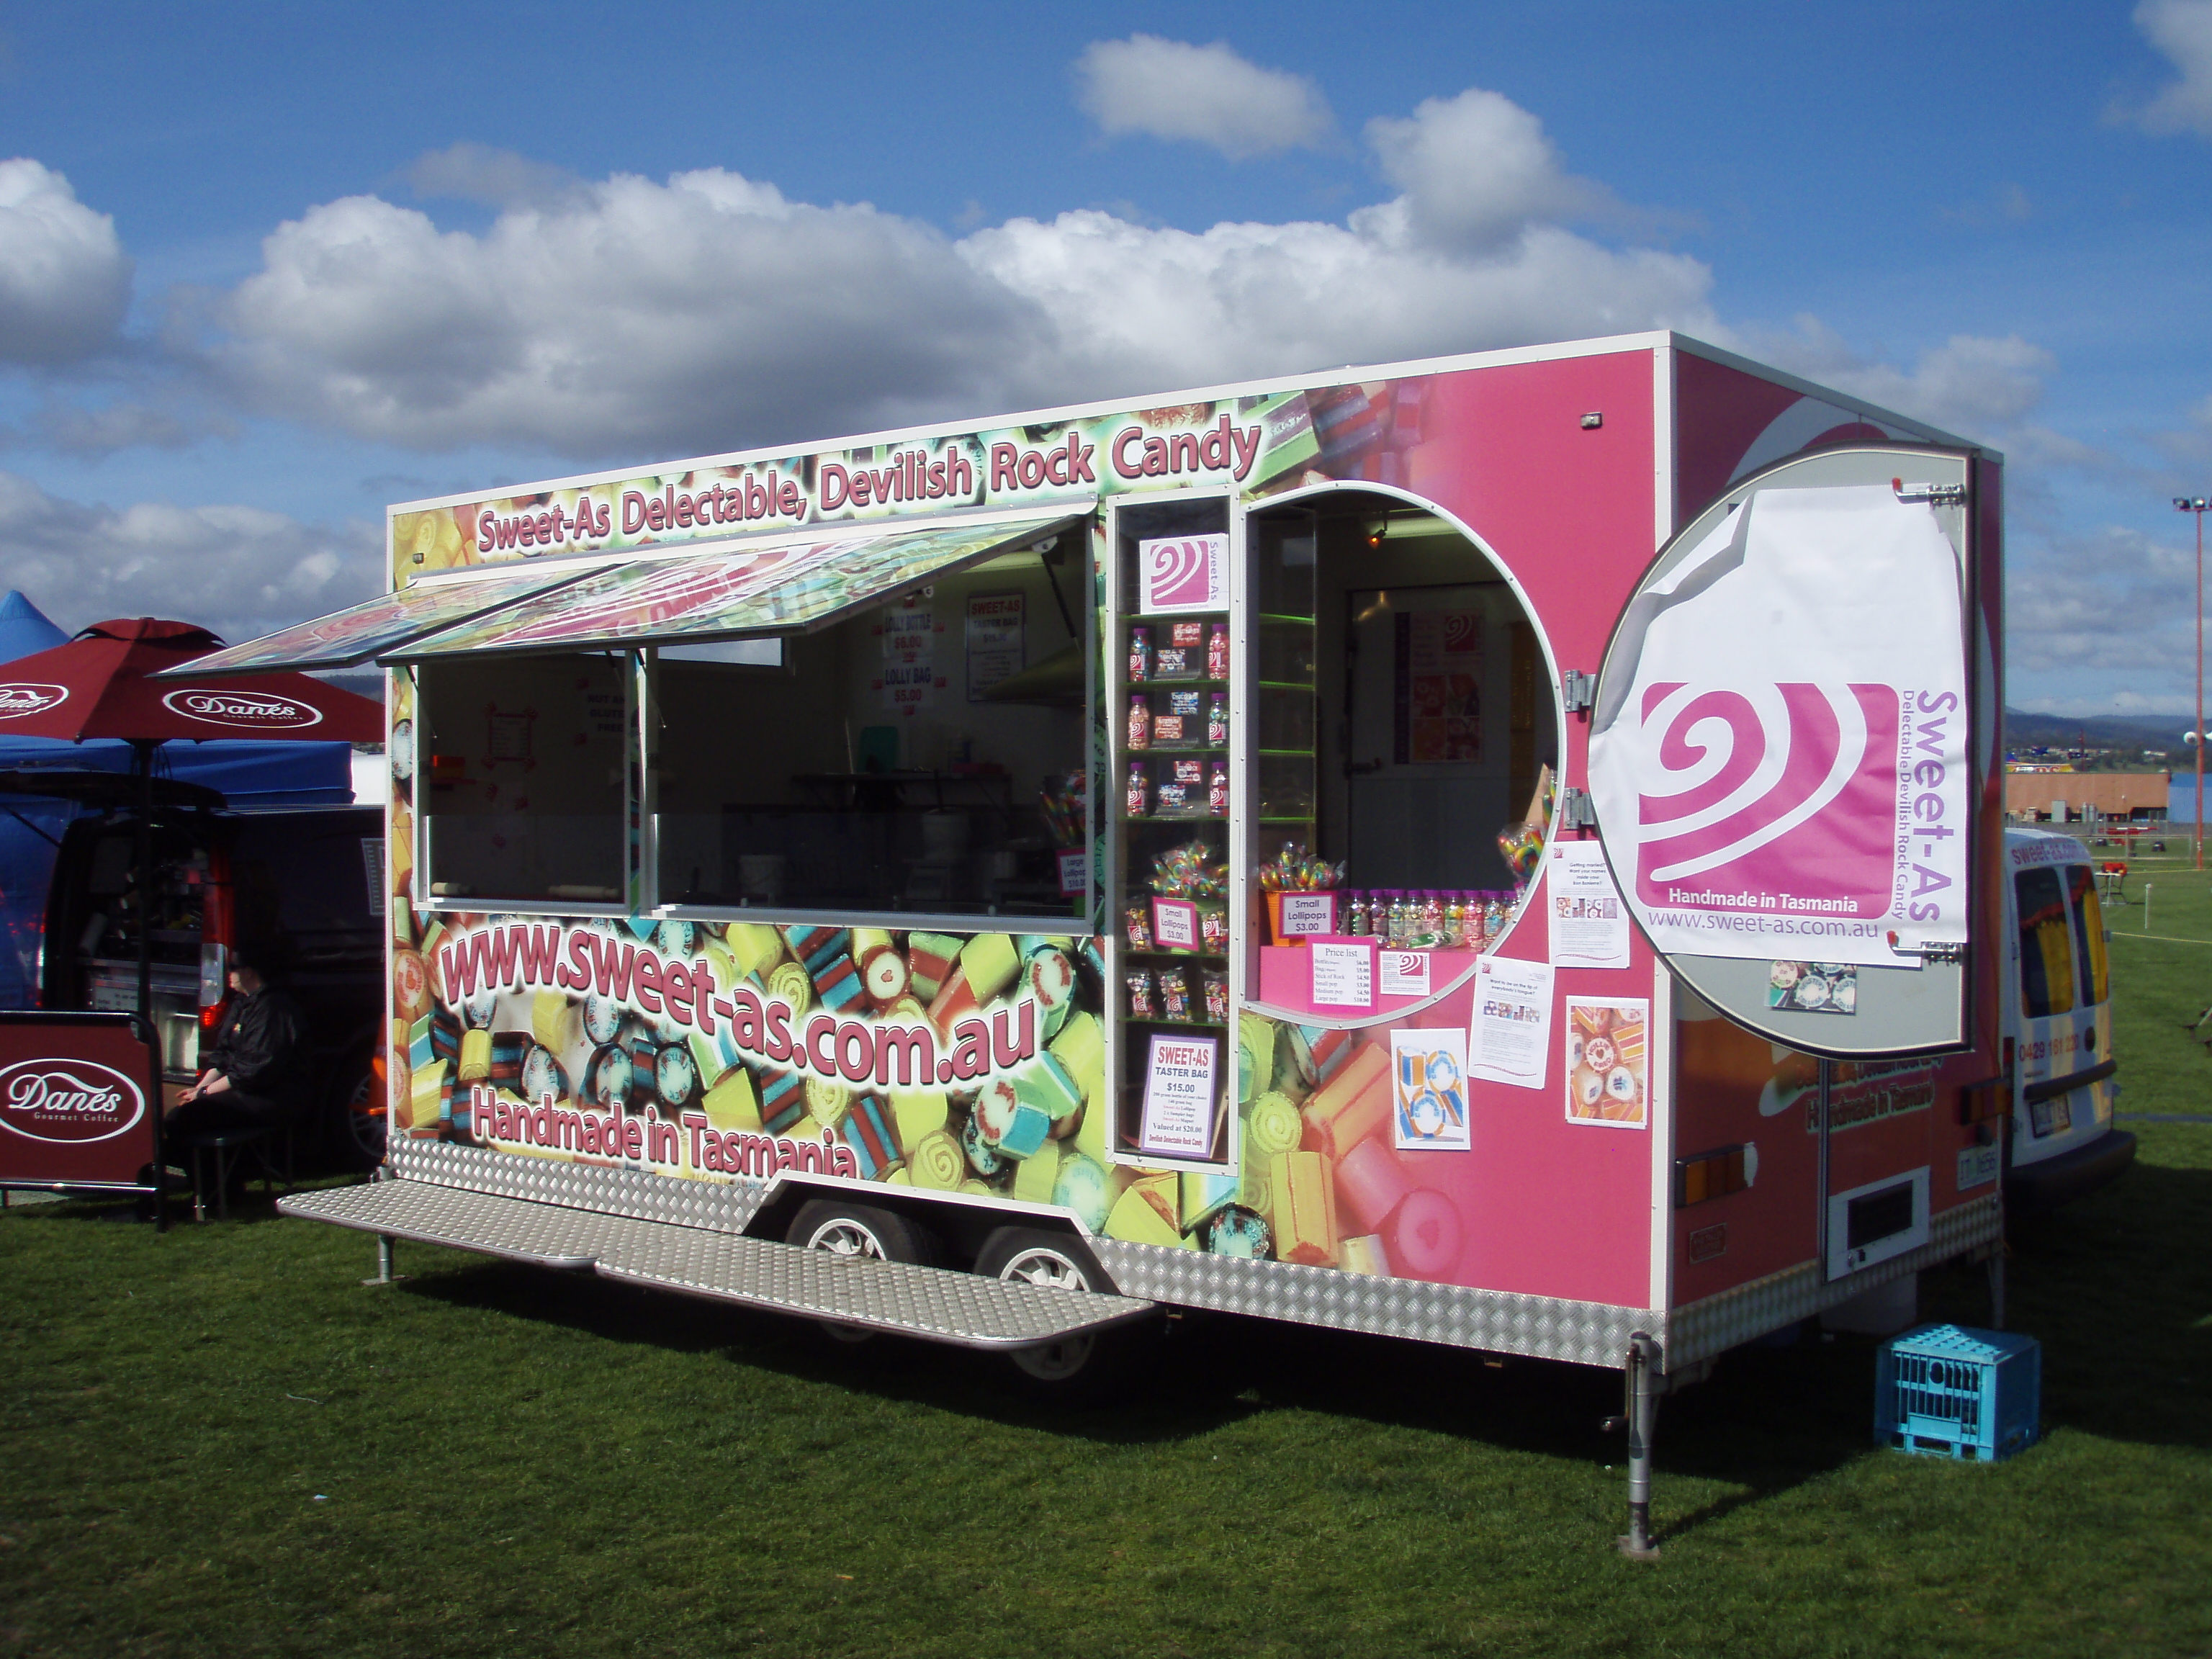 Confectionery Business - Custom Built Mobile Kitchen with retail space